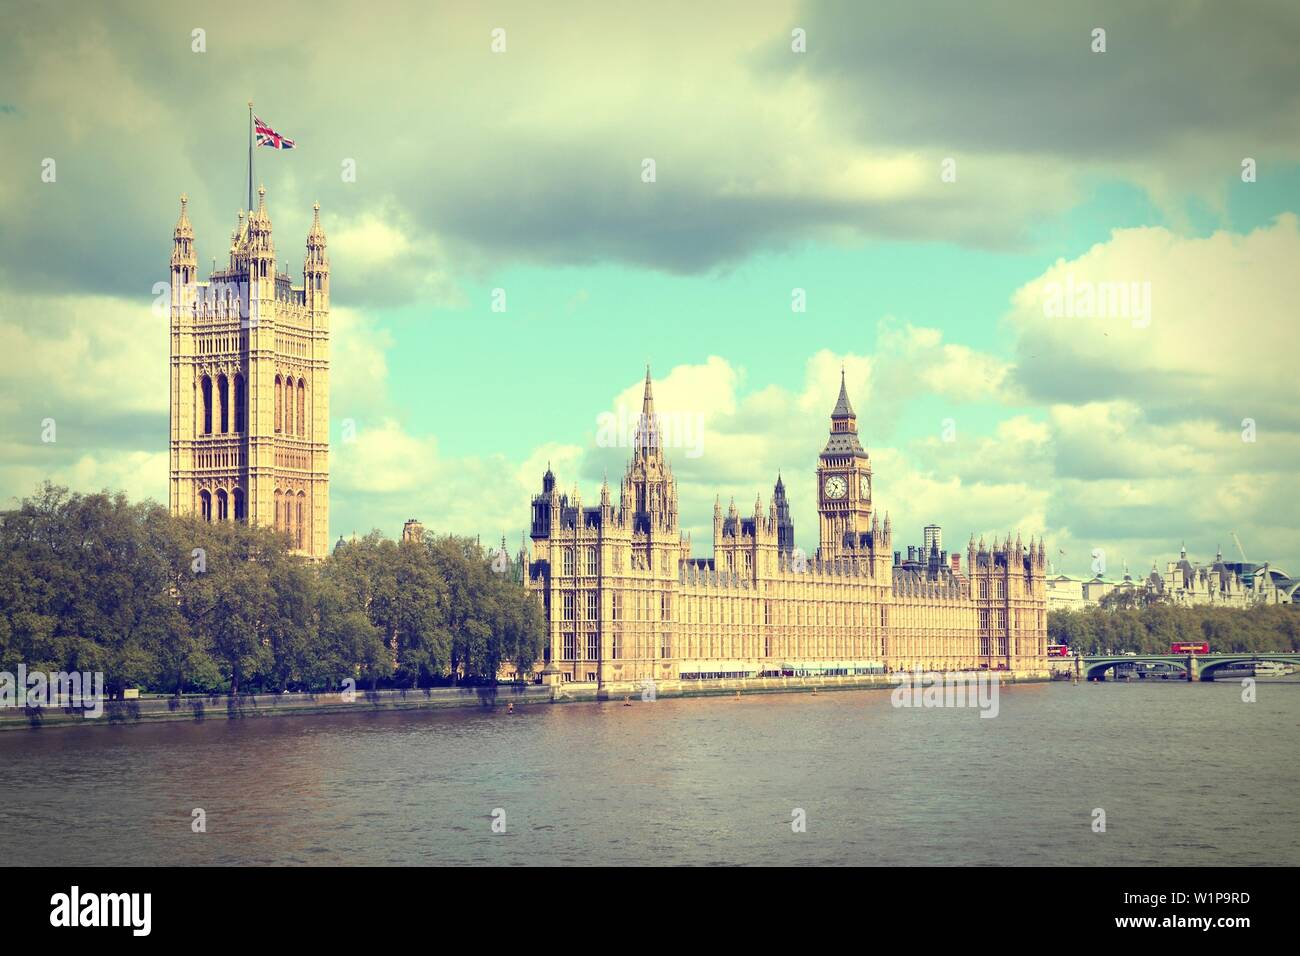 London, United Kingdom - Palace of Westminster (Houses of Parliament) with Big Ben clock tower. UNESCO World Heritage Site. Cross processed vintage ph - Stock Image